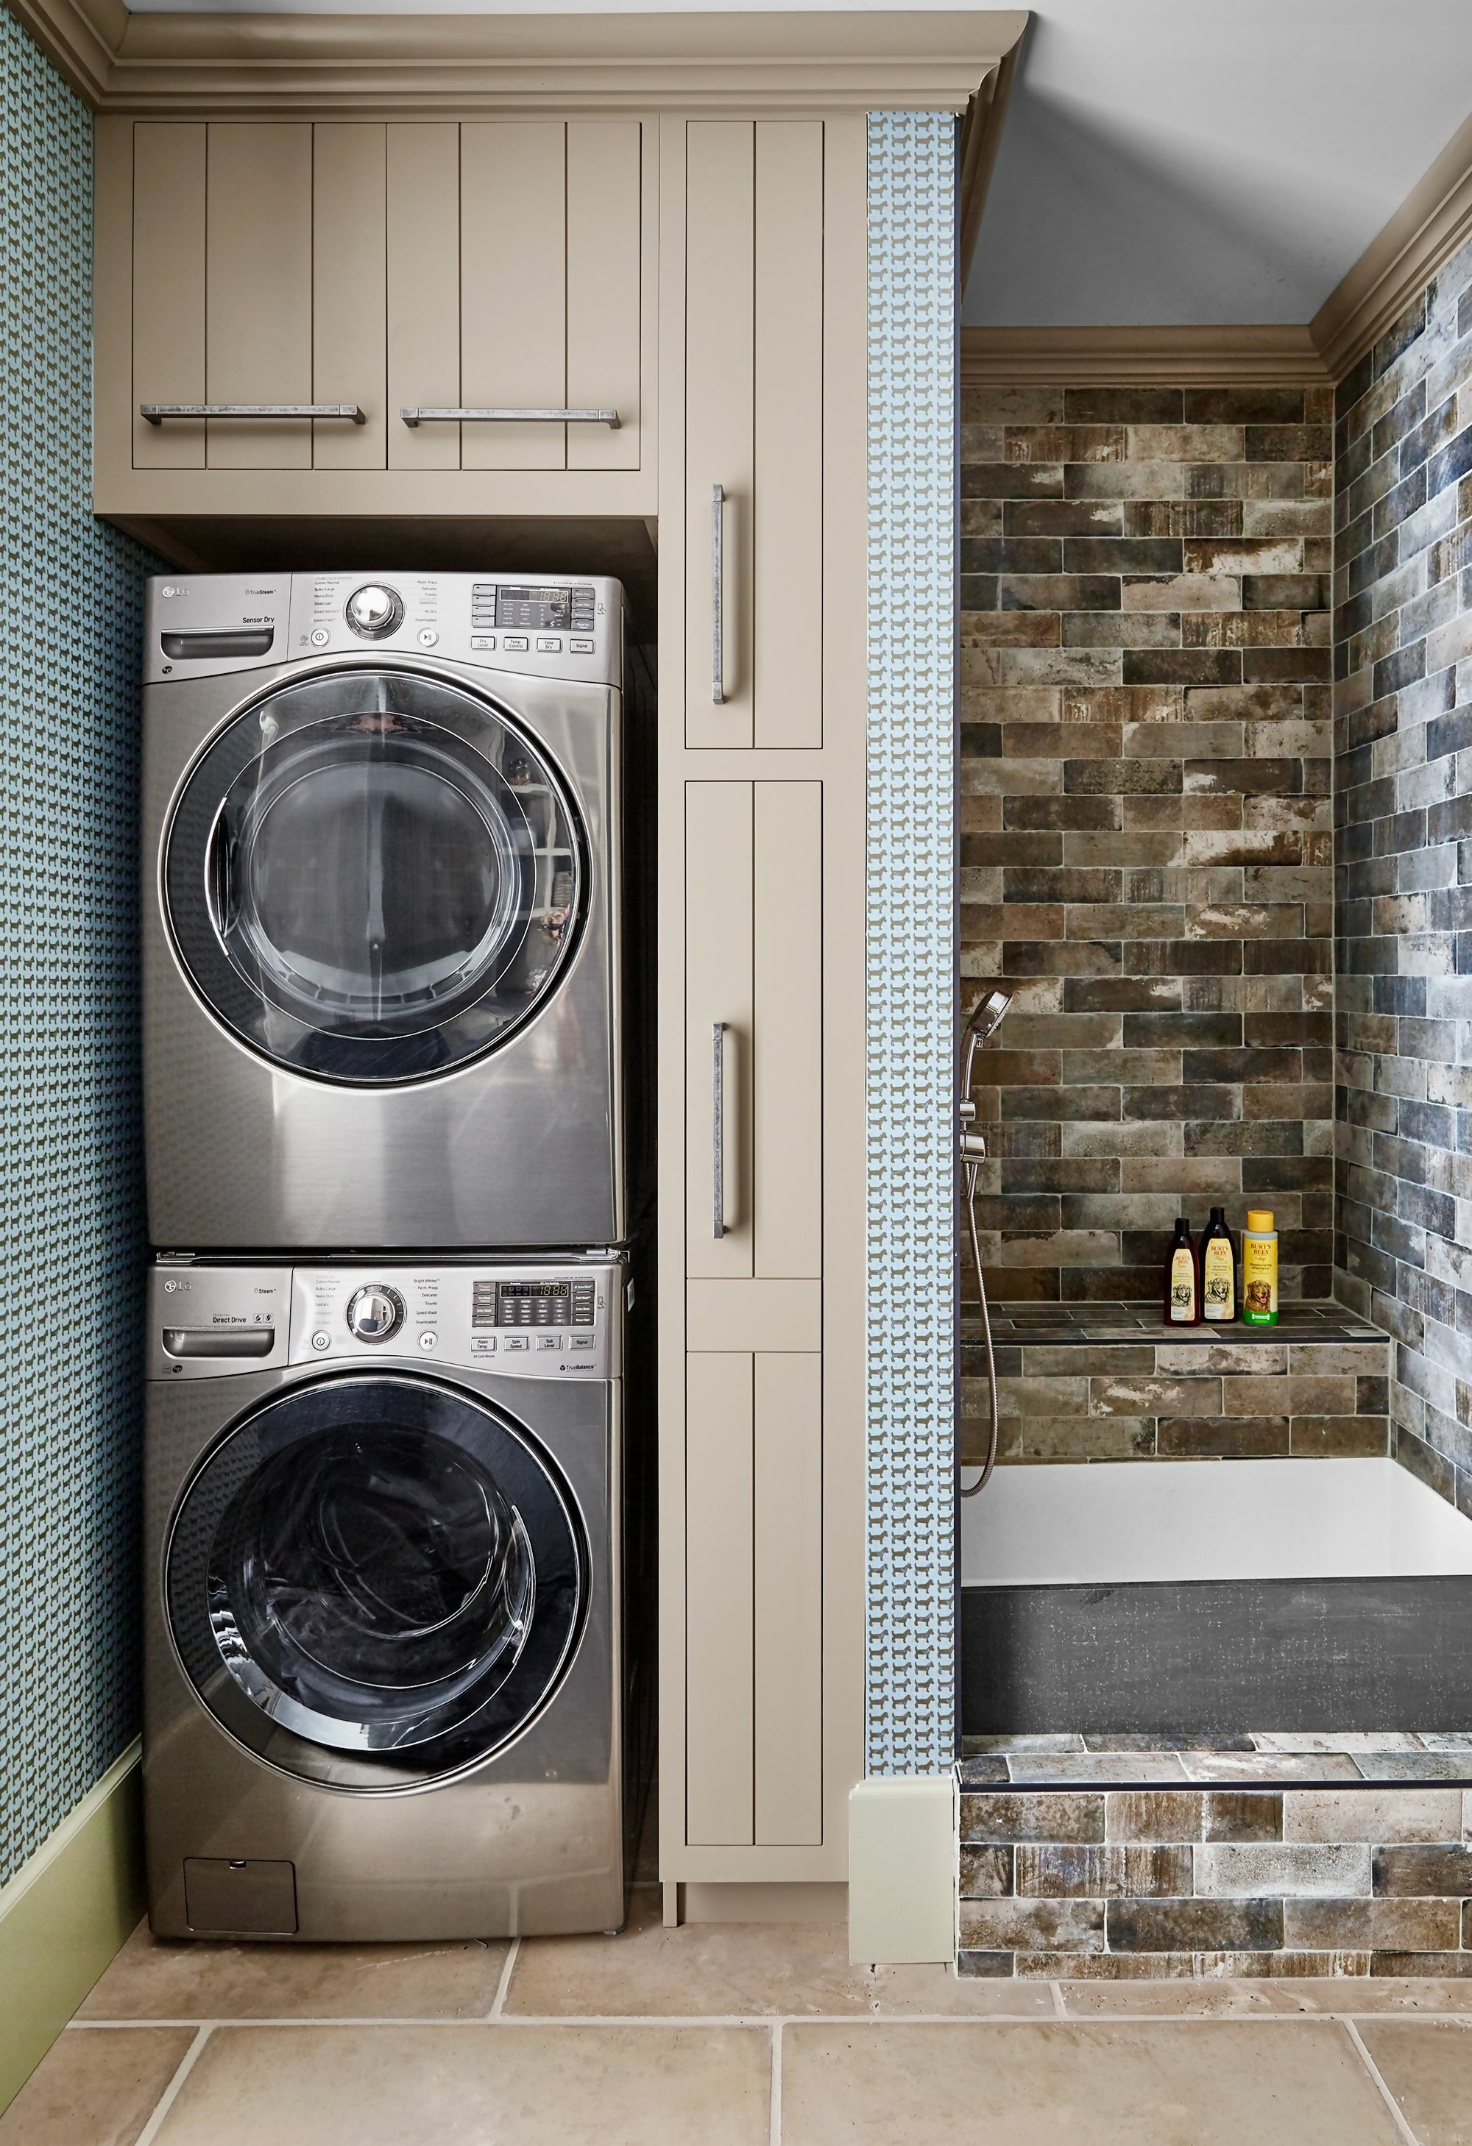 Considering A Placement For Your Laundry Room